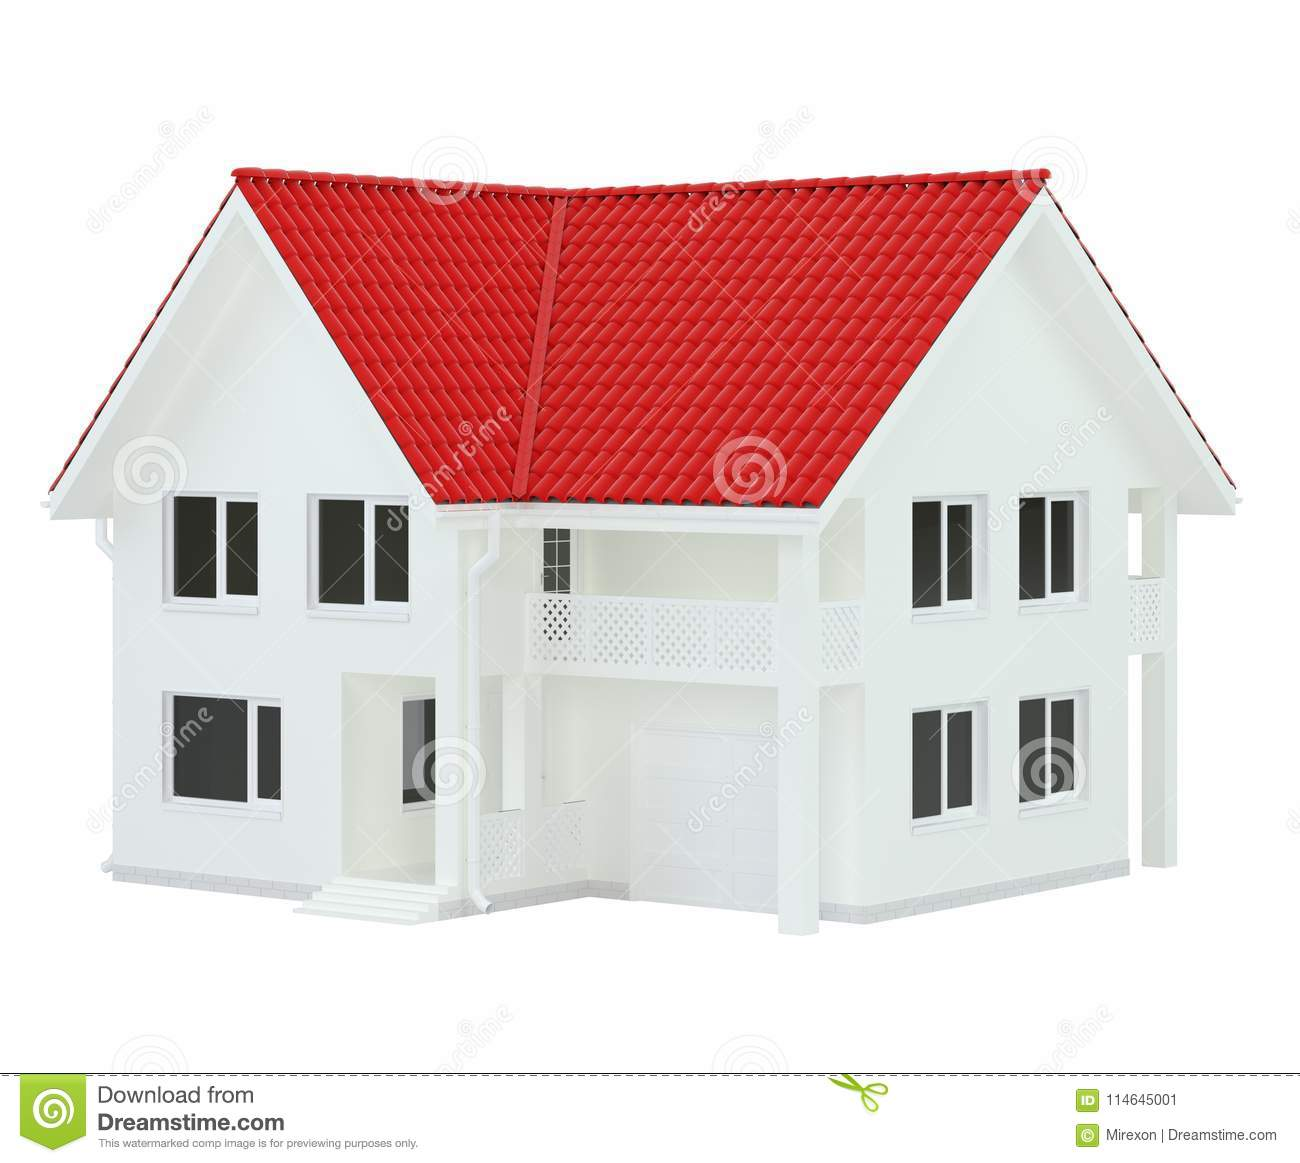 Modern House Red Roof: House Modern Contemporary Style With Red Roof Isolated On